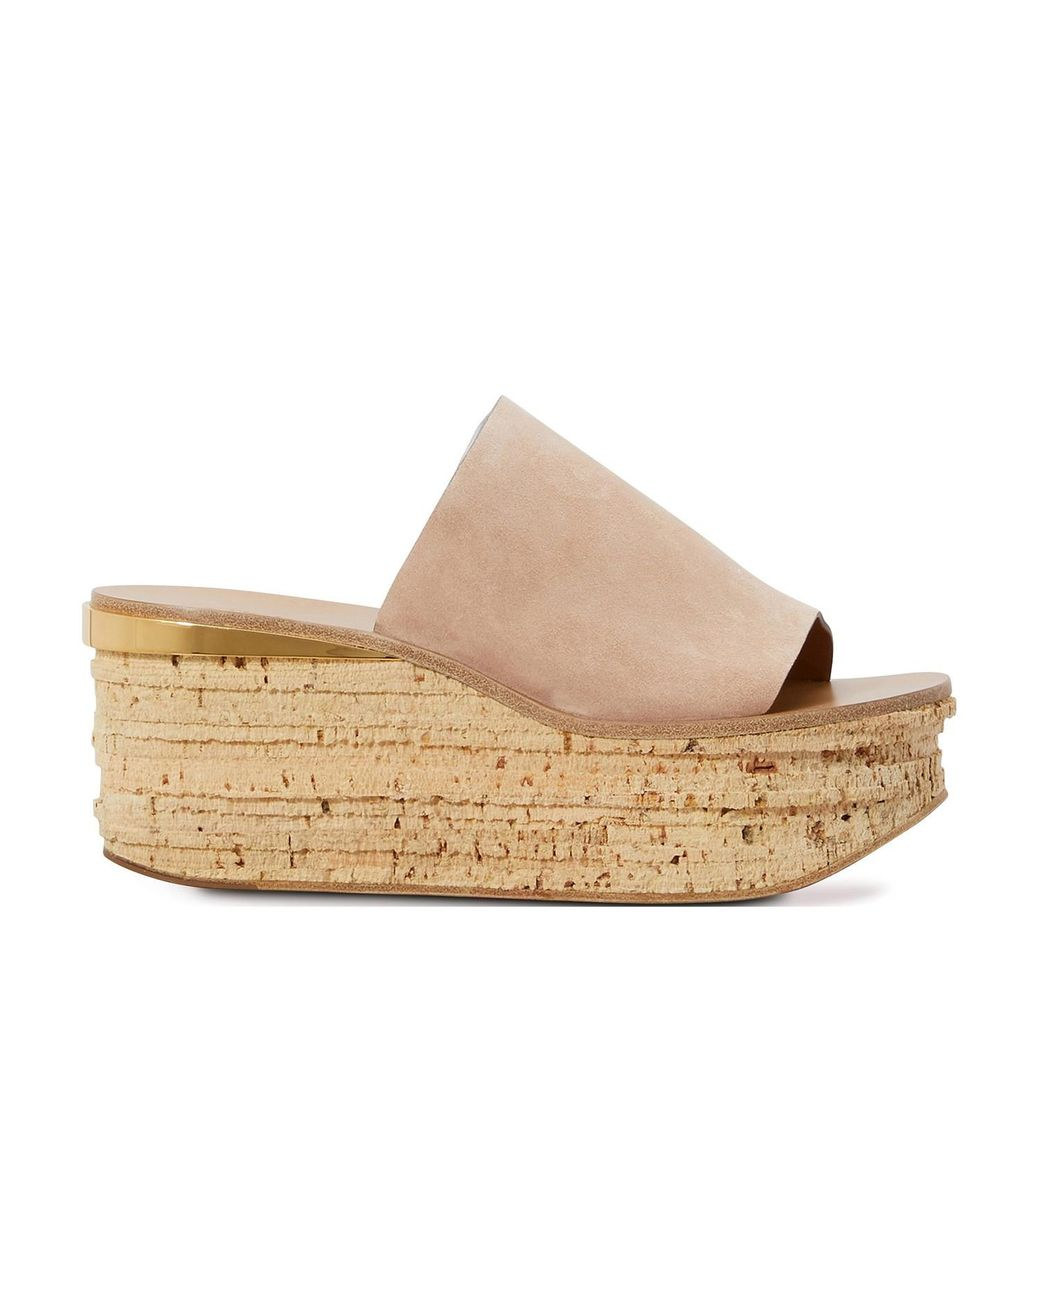 Chloé Camille Wedge Mules in Brown - Save 43% | Lyst